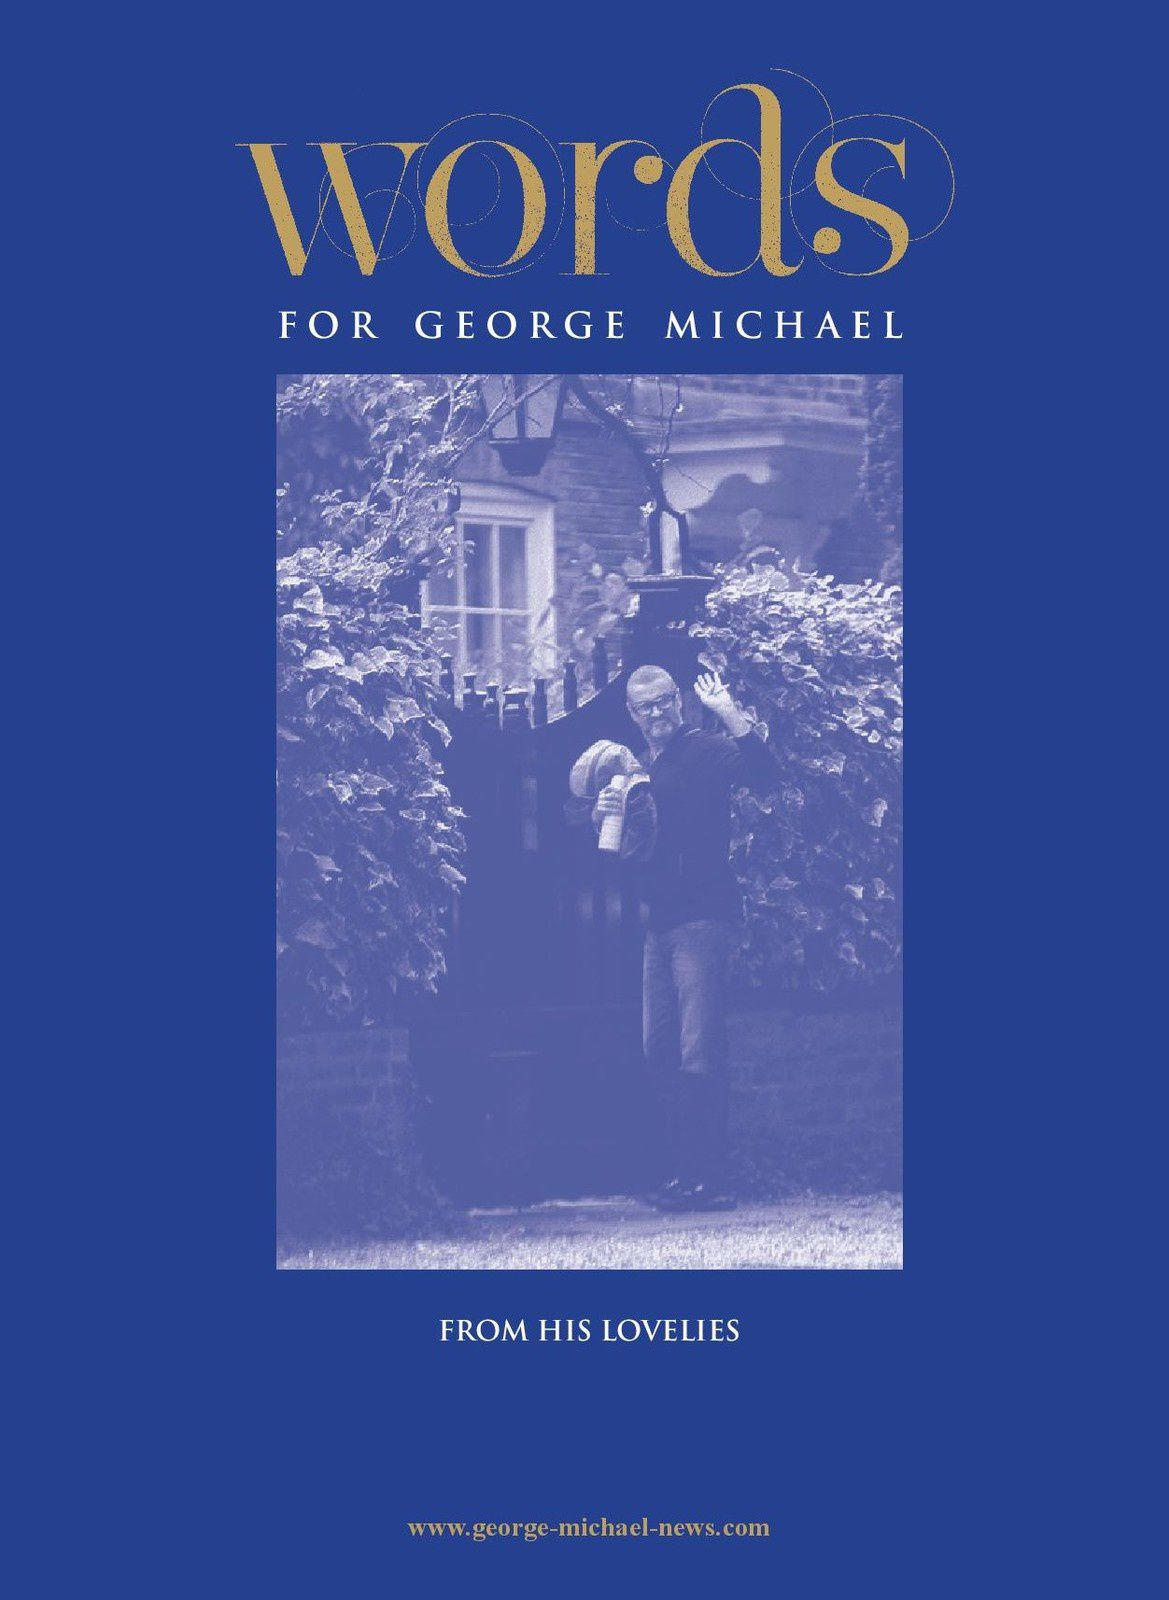 LE LIVRE D'OR DEDIE A GEORGE MICHAEL